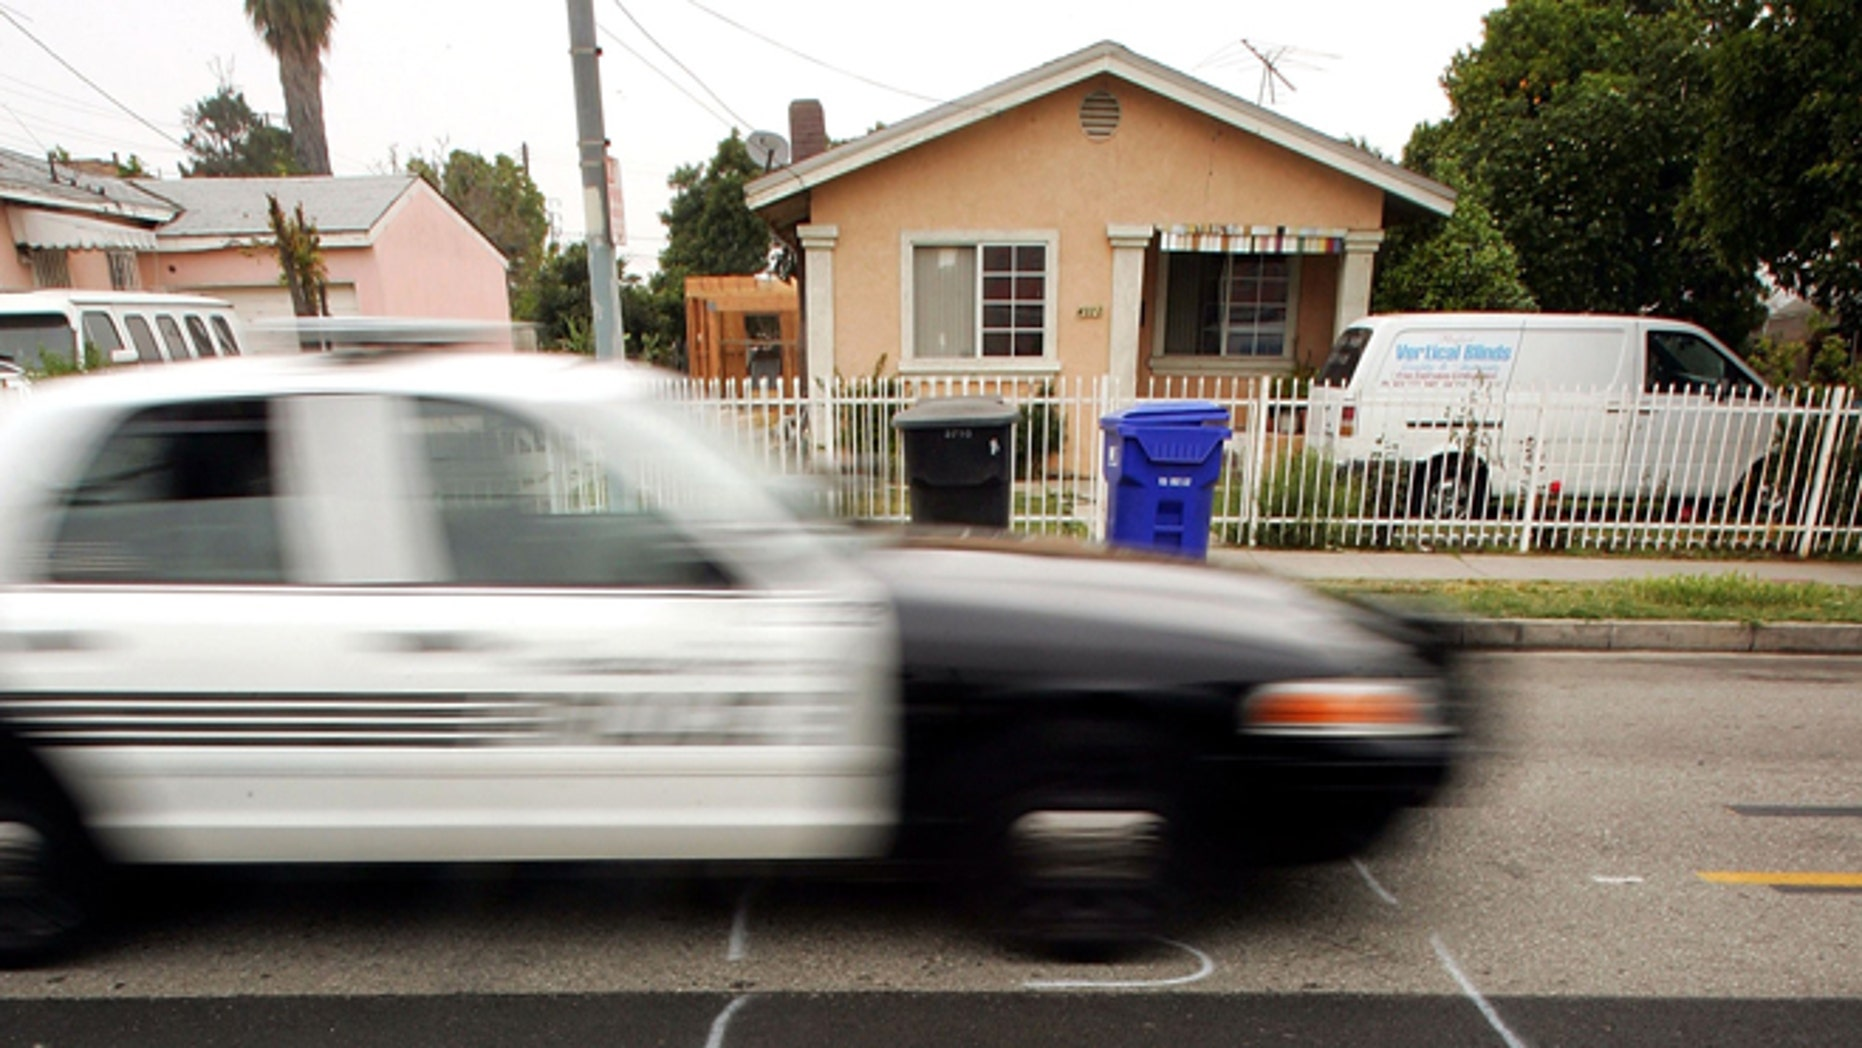 "MAYWOOD, CA - MAY 17:  A police car drives down a residential street marked to be dug up for service with shorthand letters for ""underground service alert"" on May 17, 2006 in the Los Angeles-area city of Maywood, California. According to reports, the Maywood City Council has declared the municipality a ""sanctuary"" for illegal immigrants. The city has done away with the police department's traffic division after receiving complaints that officers were targeting illegal immigrants which has made it more difficult for police to tow cars whose owners do not have driver's licenses. The city also officially opposed a proposed federal law that would have criminalized illegal immigration and forced local police to enforce immigration law. Approximately 96 percent of the city's population of about 29,000 is Latino and more than half are foreign-born.  (Photo by David McNew/Getty Images)"